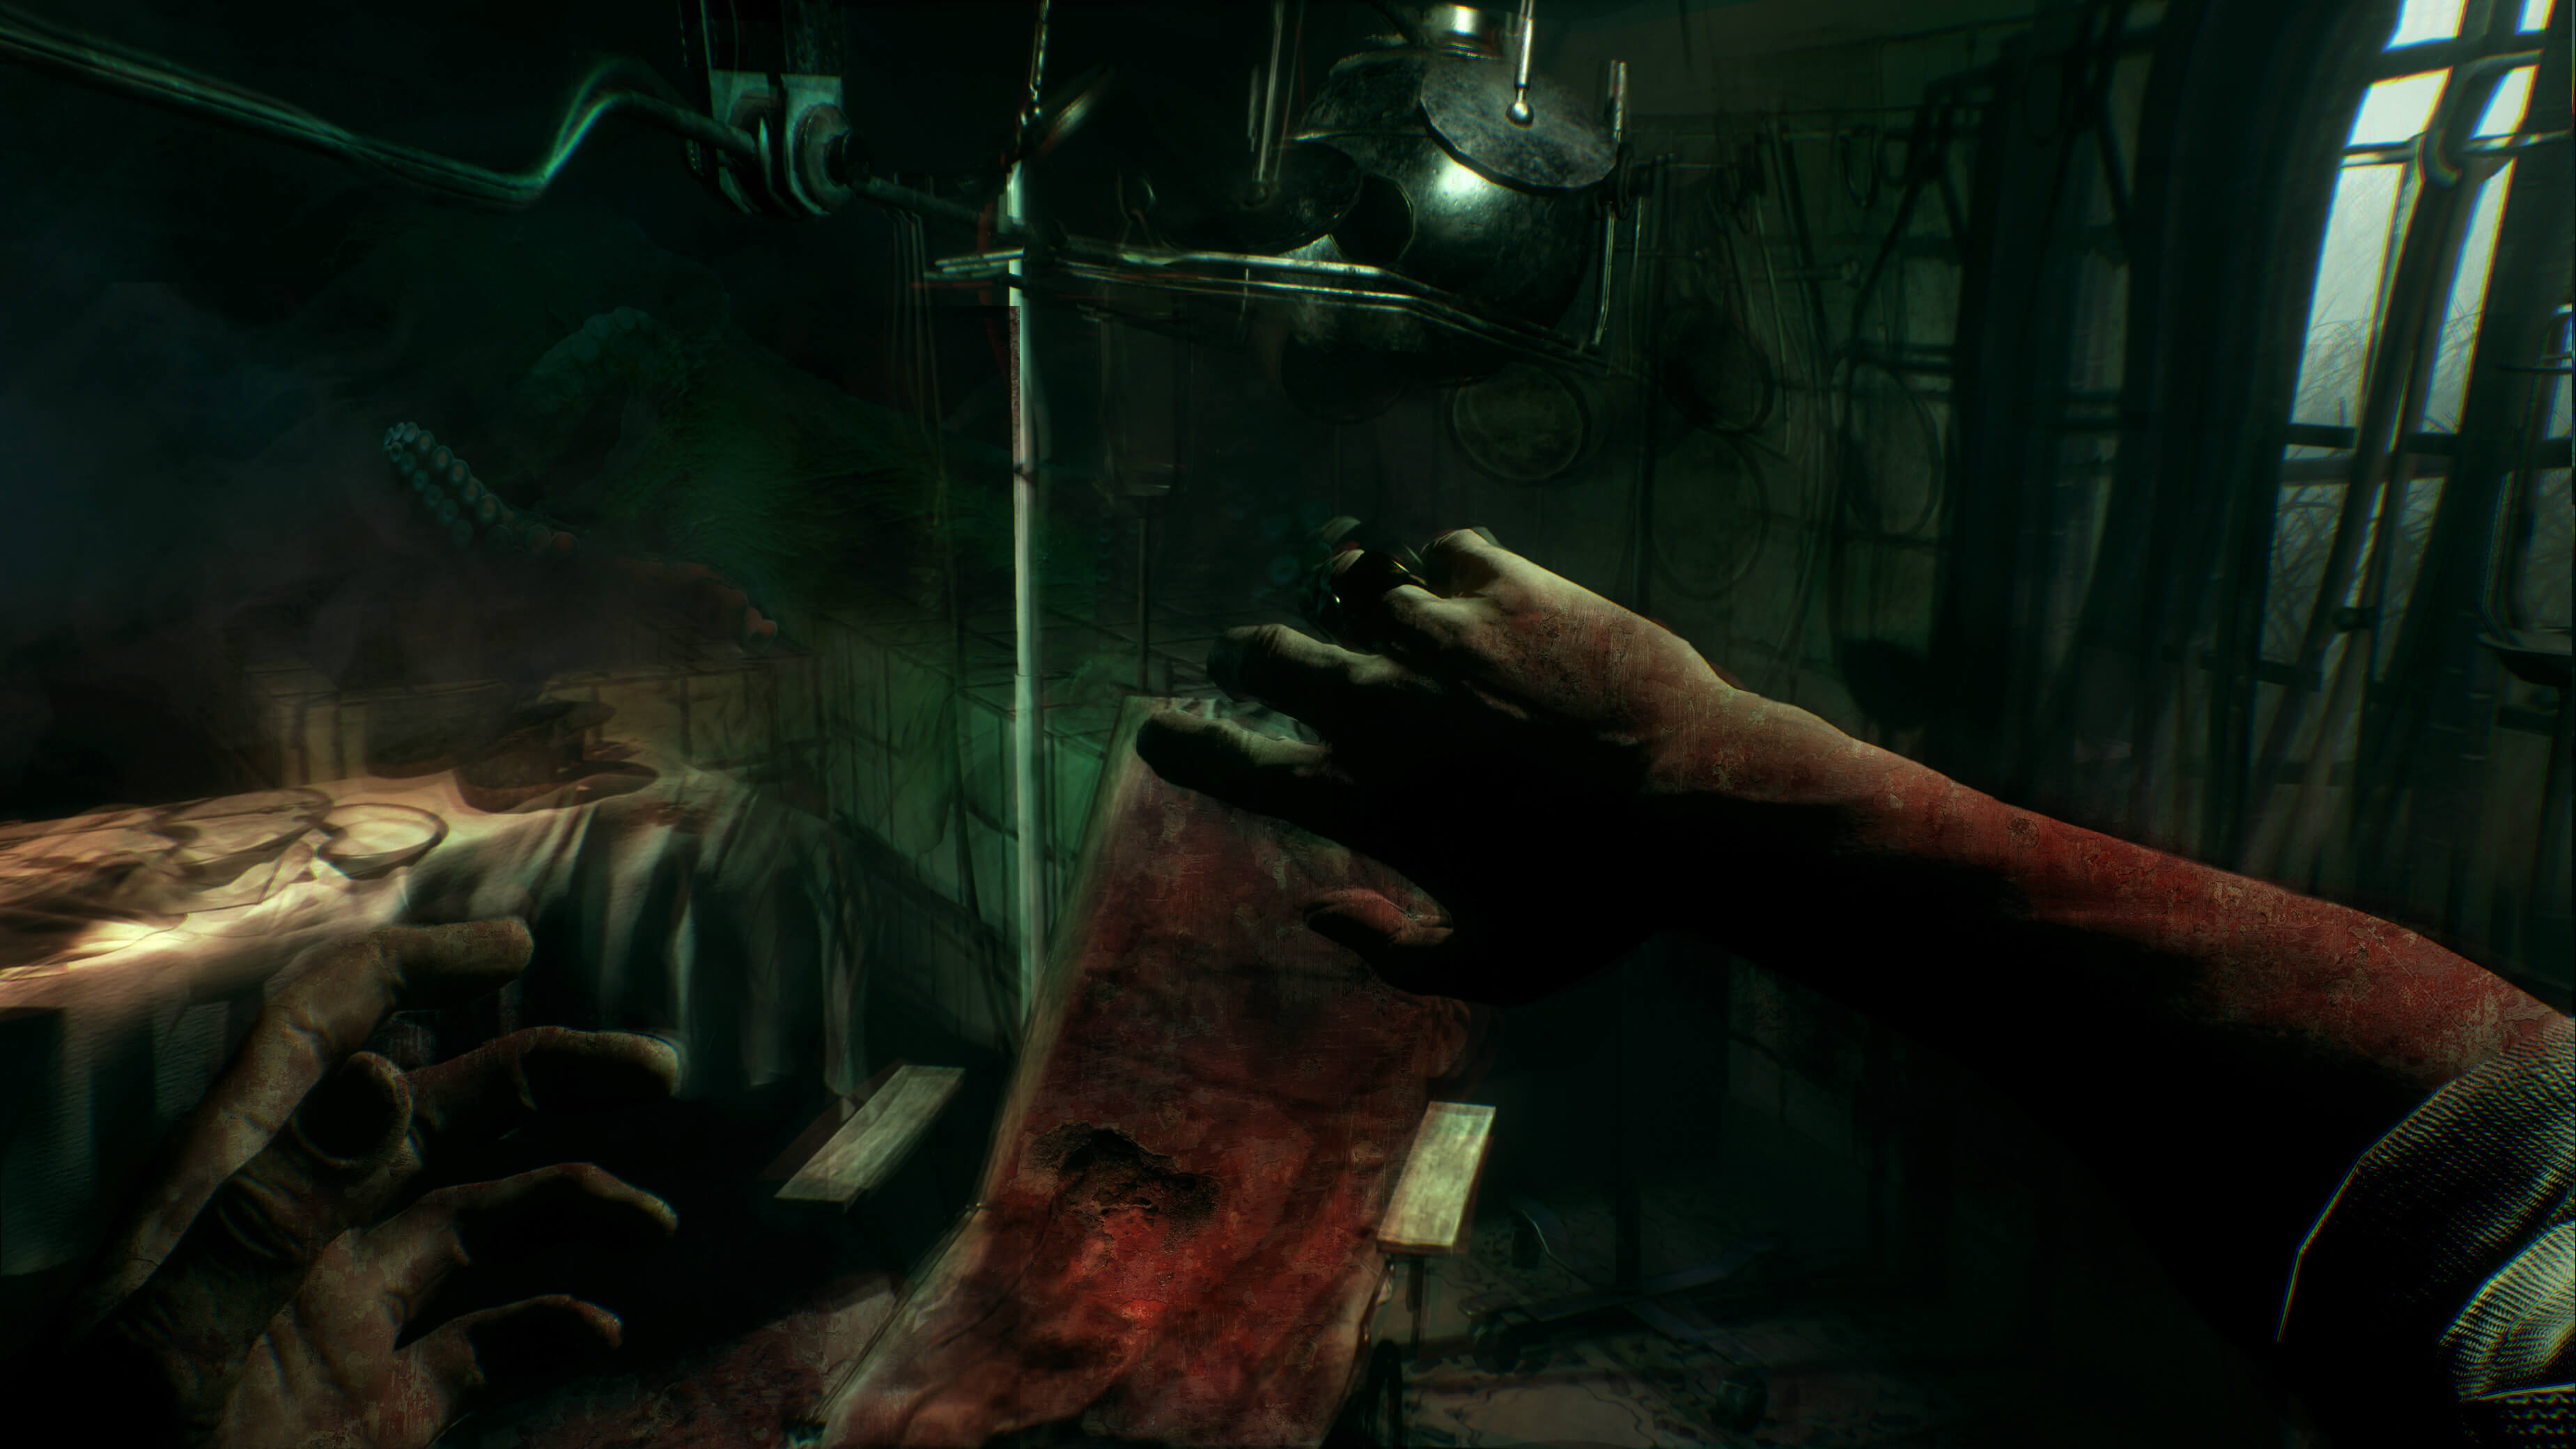 Call of Cthulhu review: Insanity